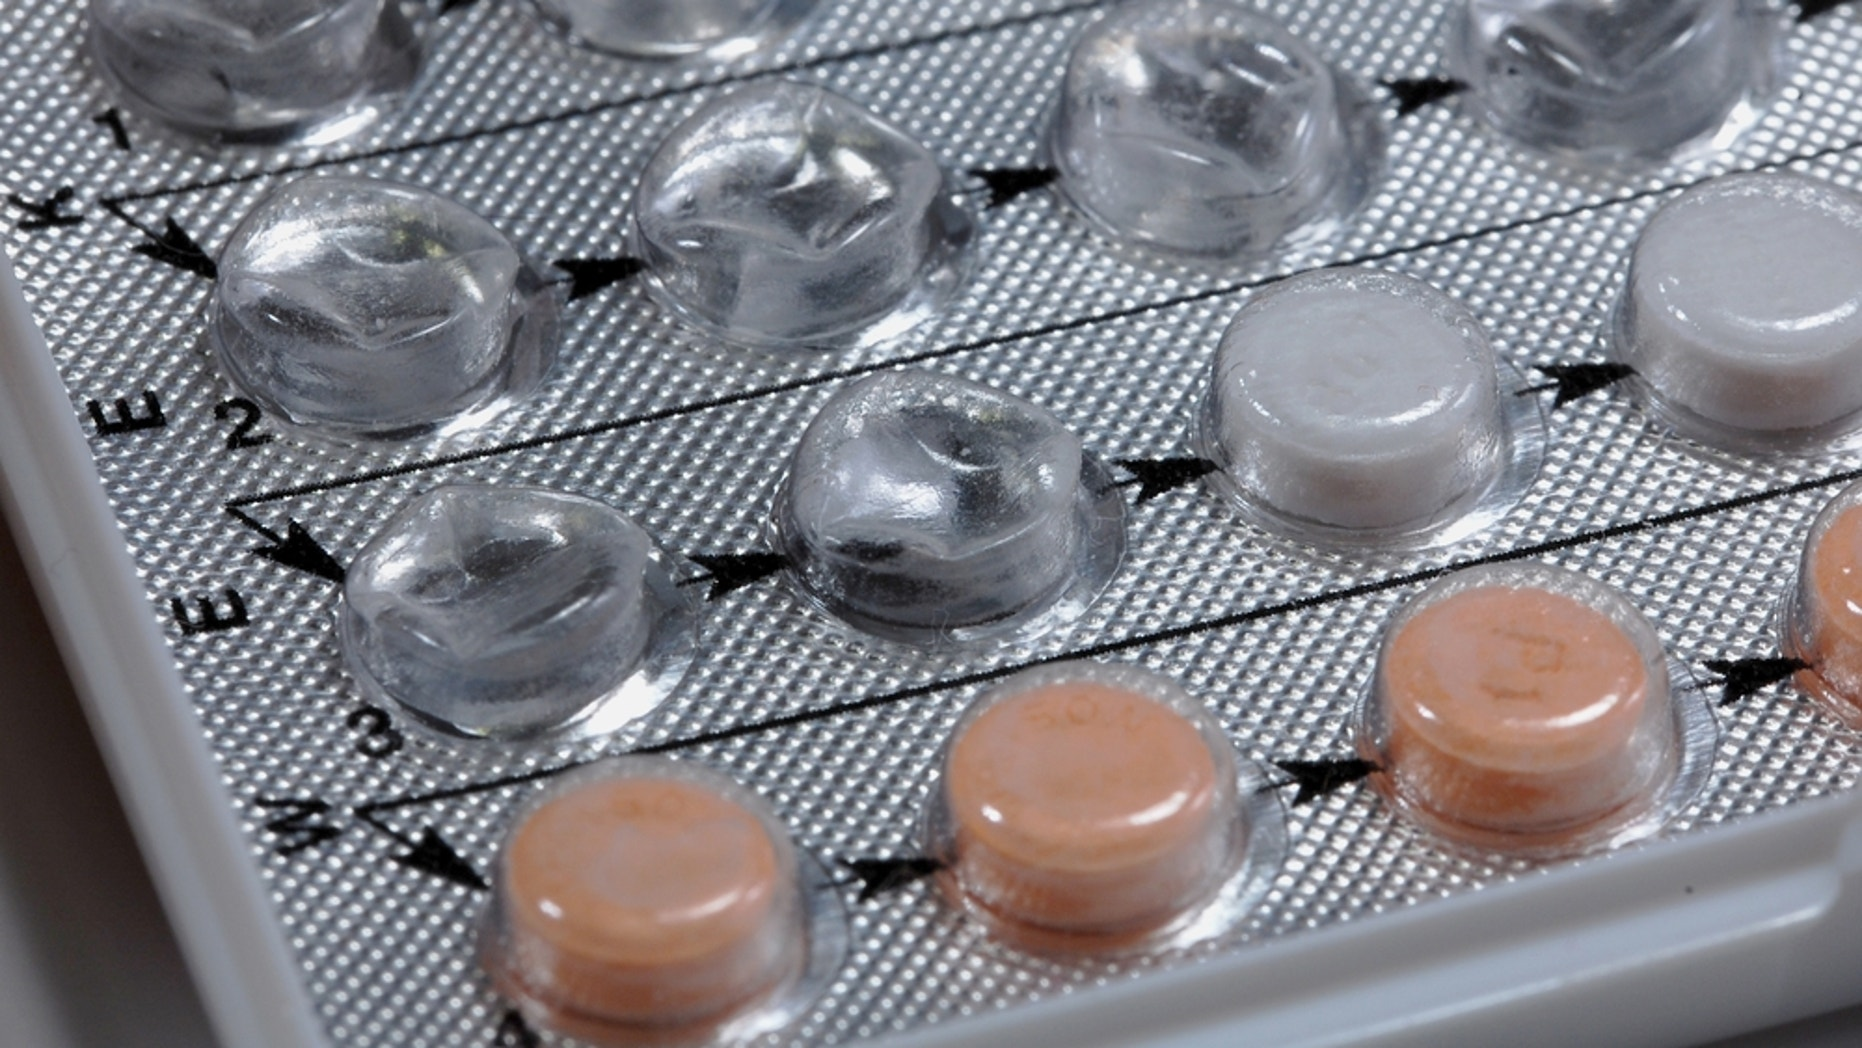 New male contraceptive pill deemed safe after trial breakthrough